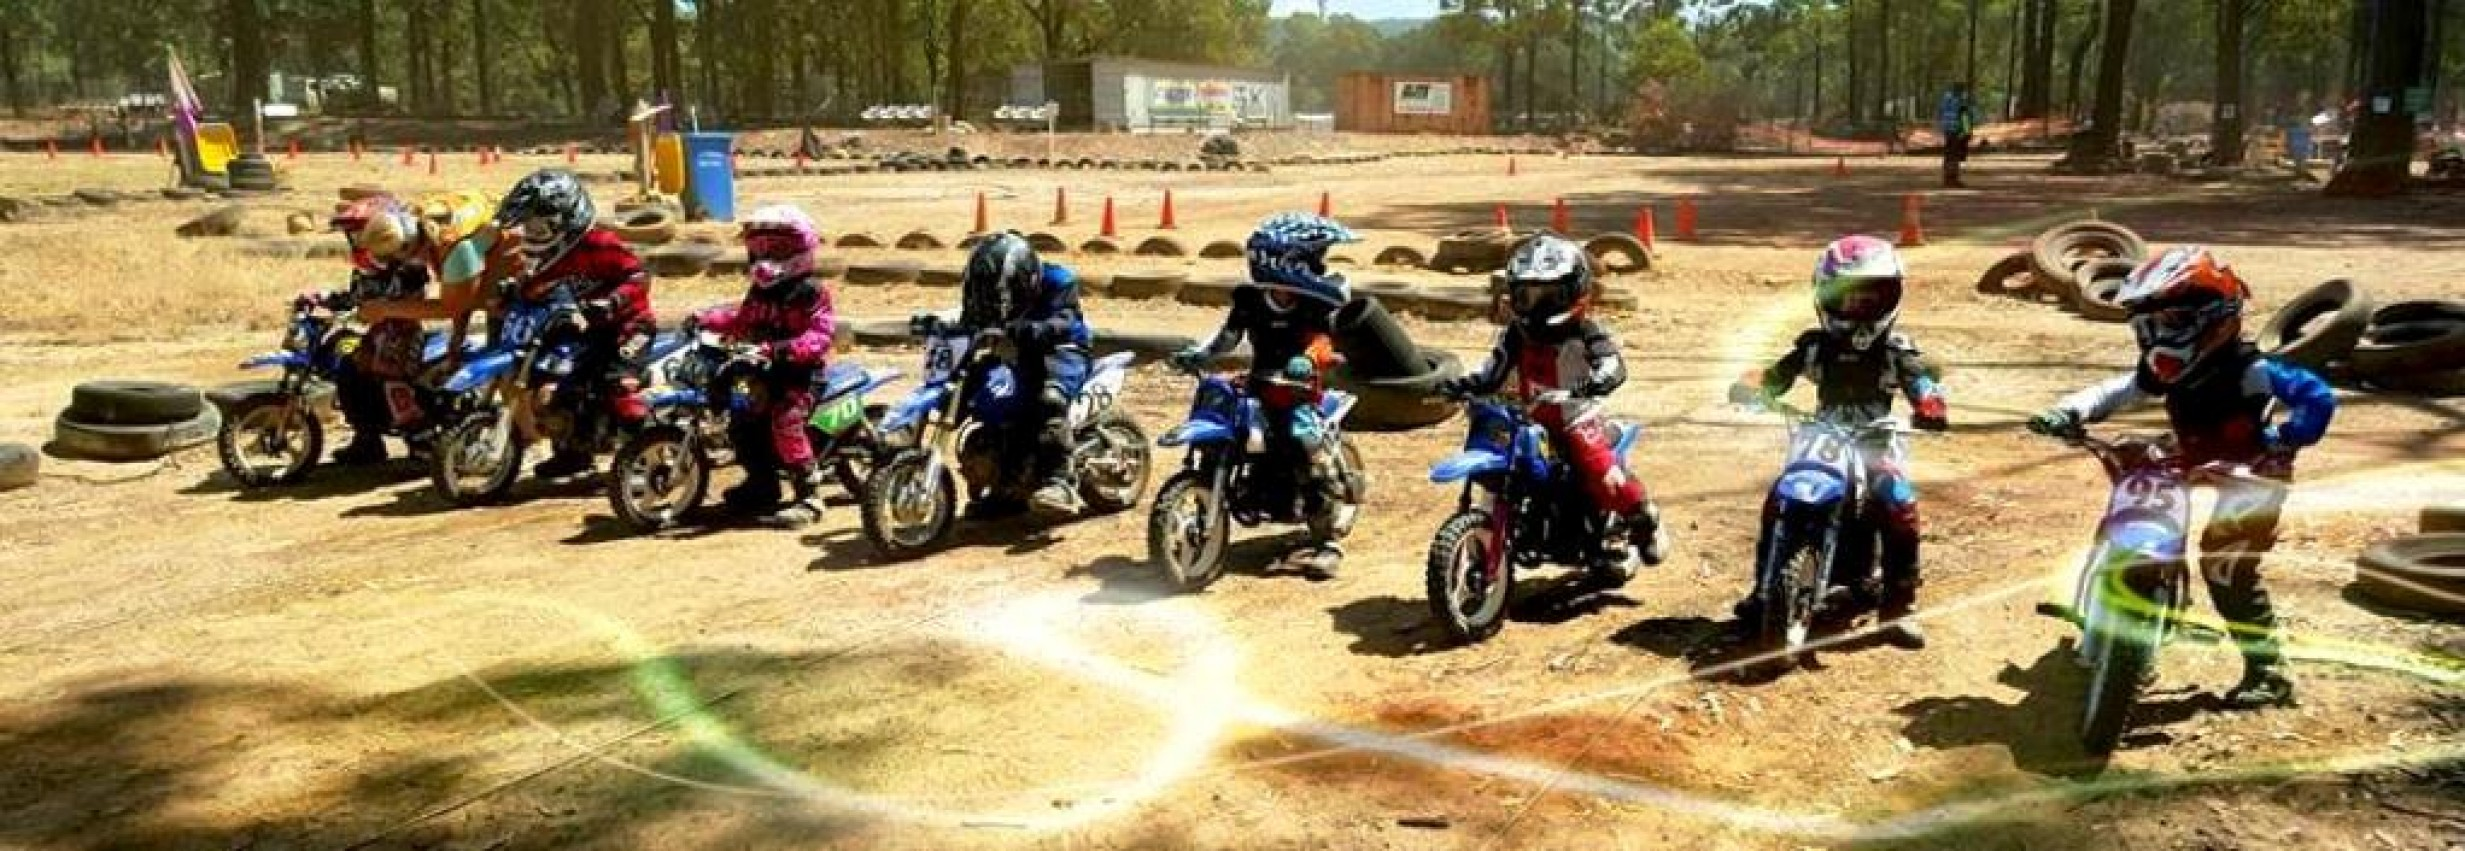 Penrith PCYC Minibike Club